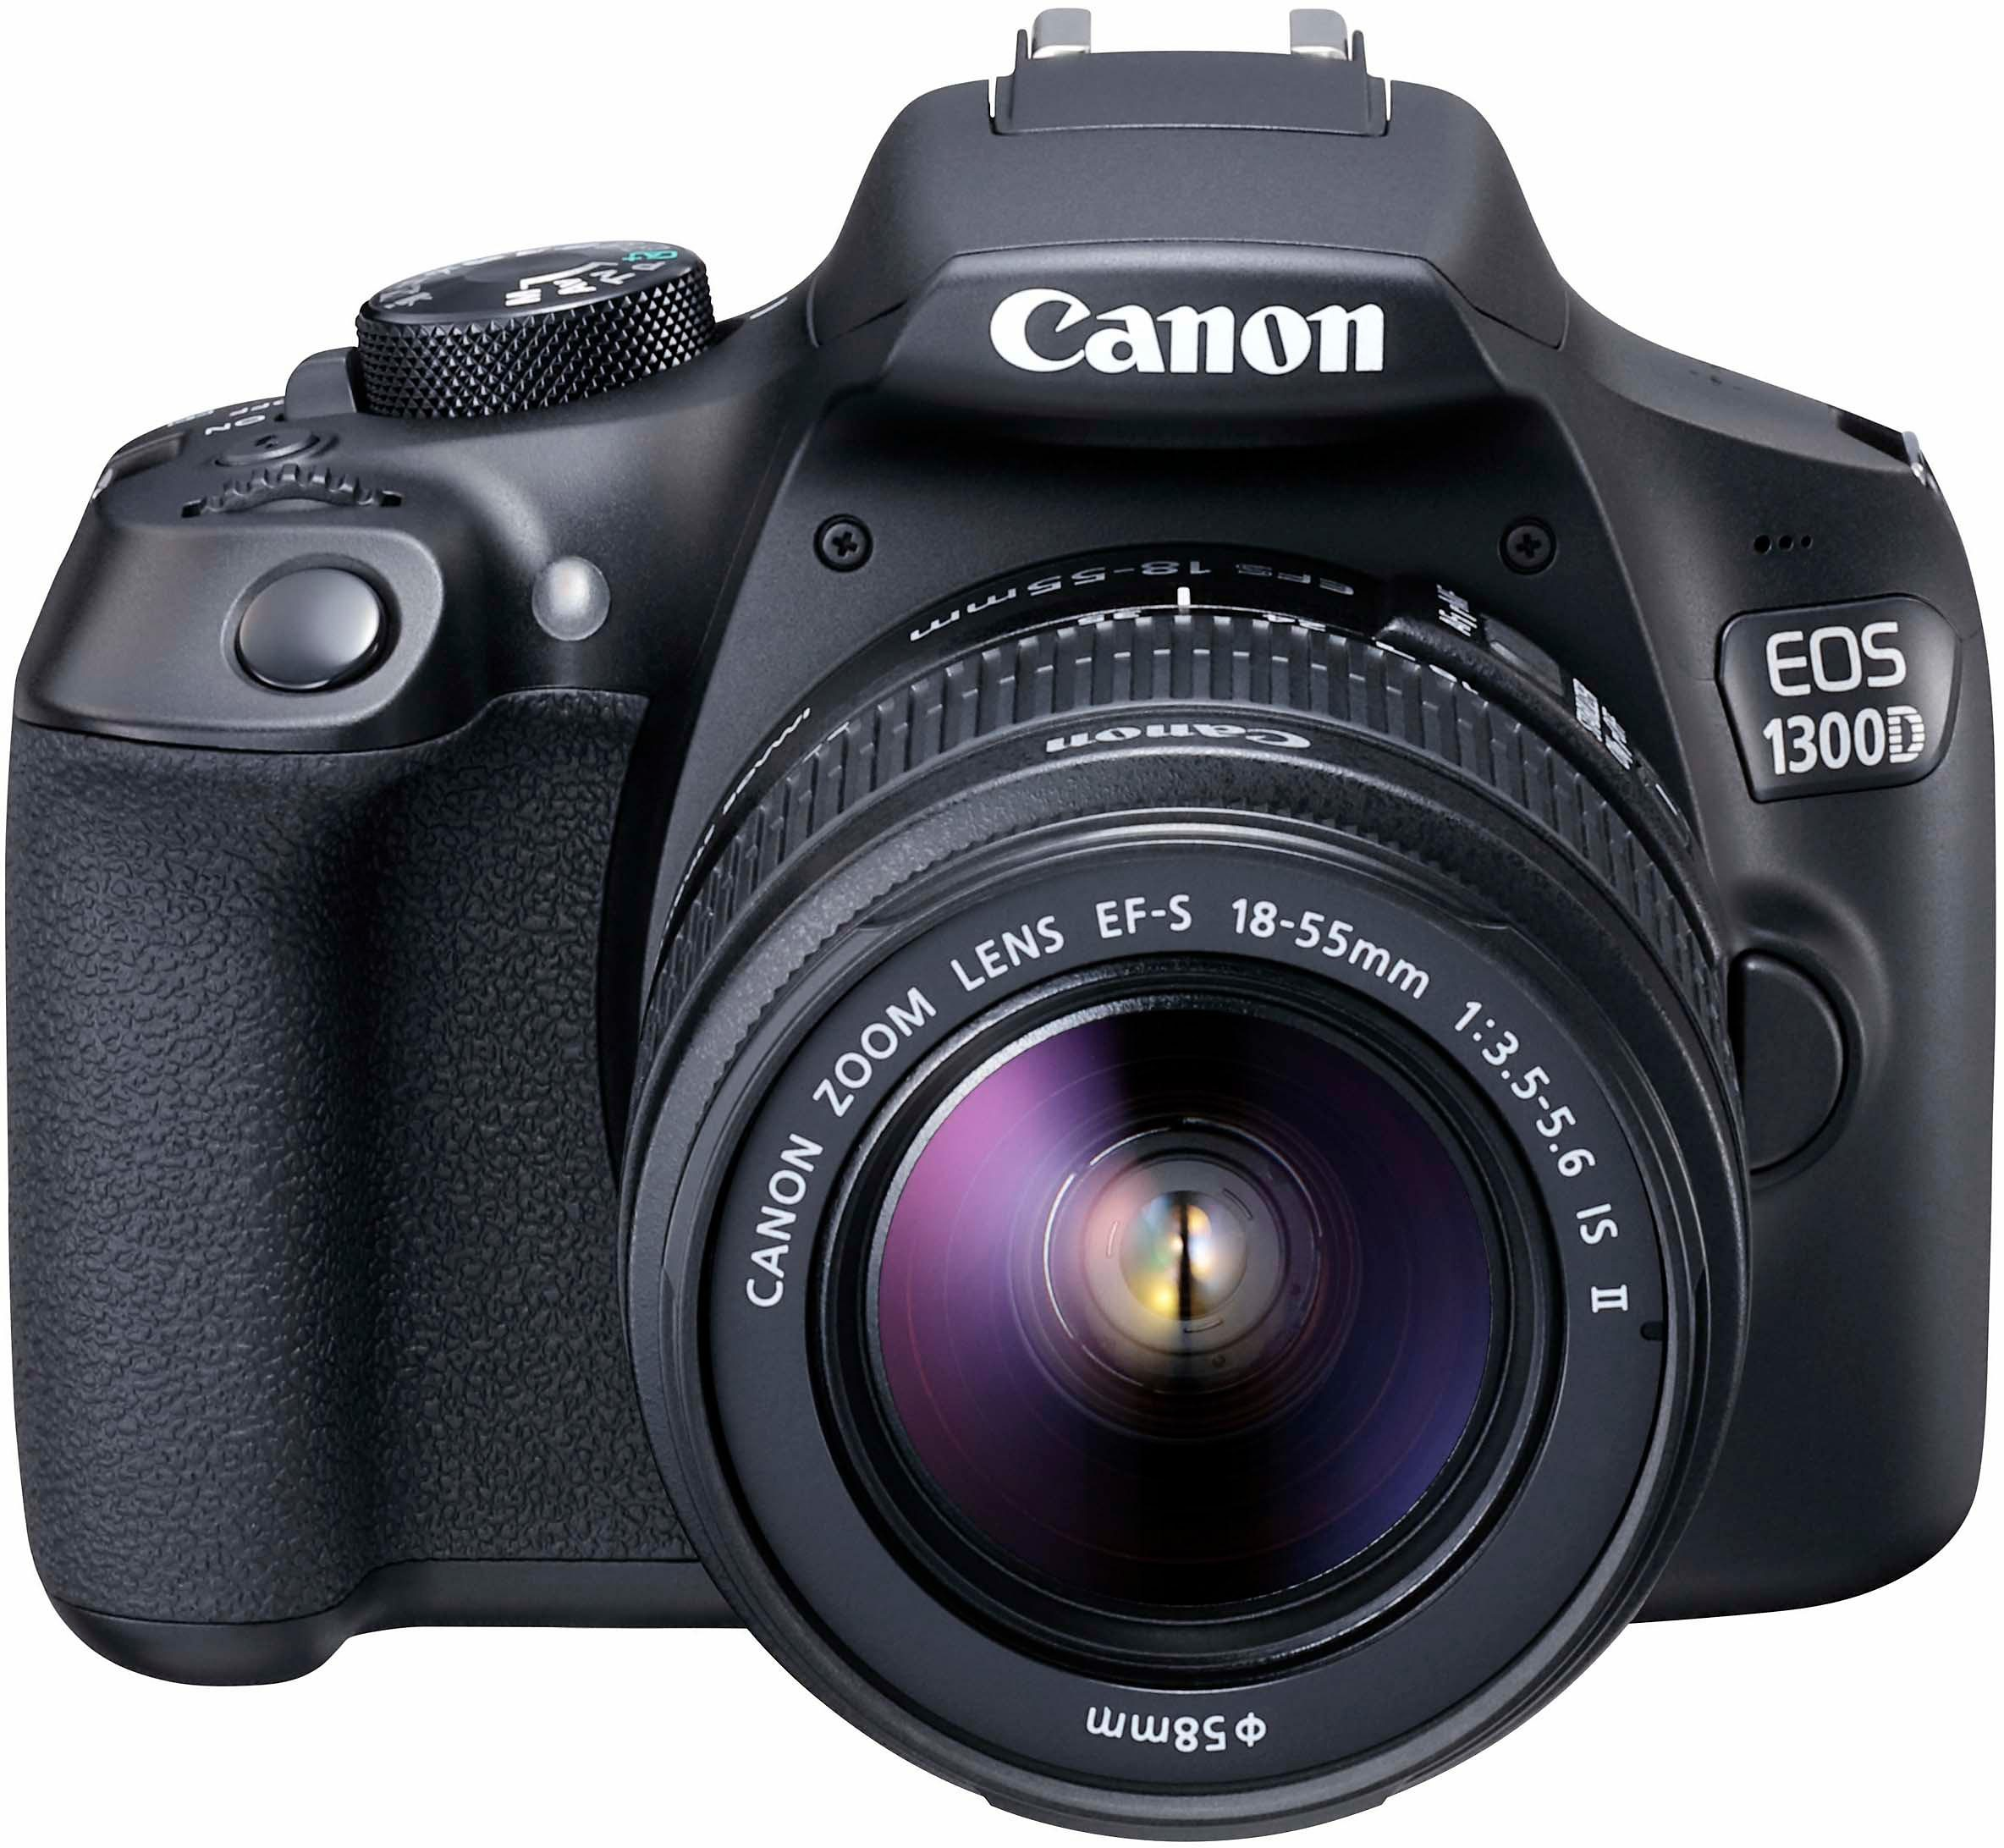 Canon EOS 1300D Kit Spiegelreflex Kamera, EF-S 18-55mm IS II Zoom, 18 Megapixel